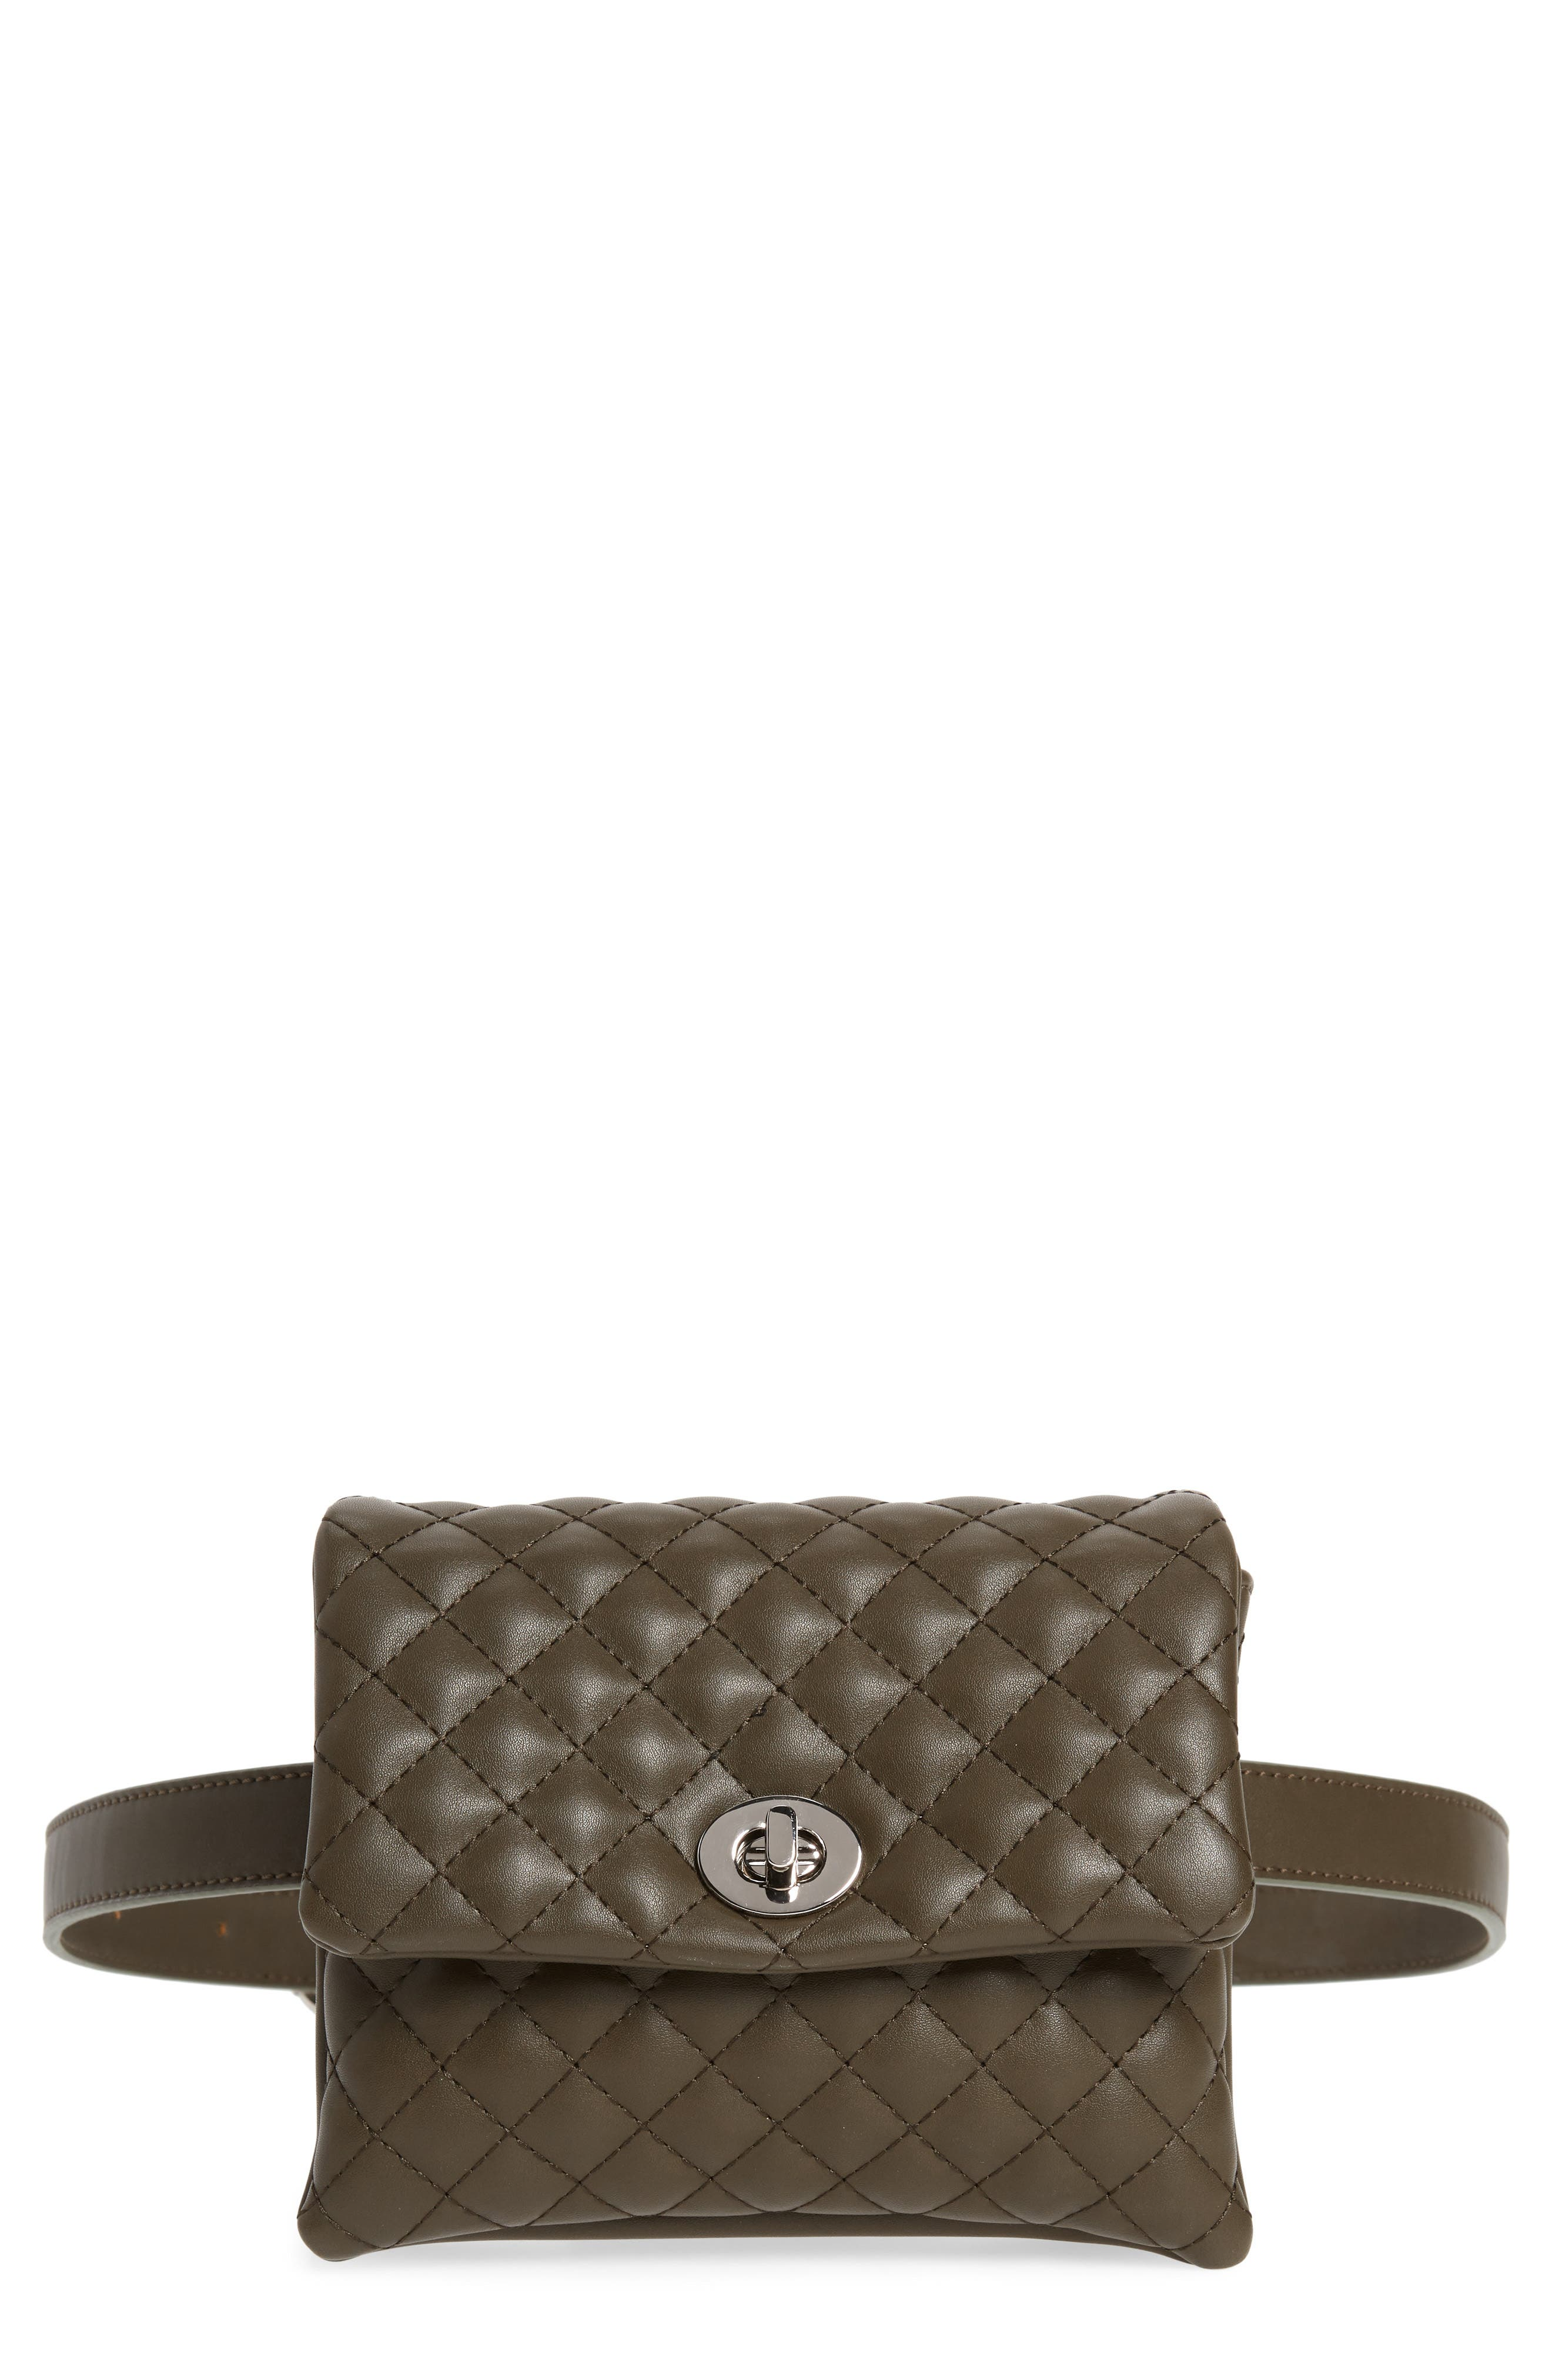 Mali + Lili Quilted Vegan Leather Convertible Belt Bag,                             Main thumbnail 1, color,                             OLIVE